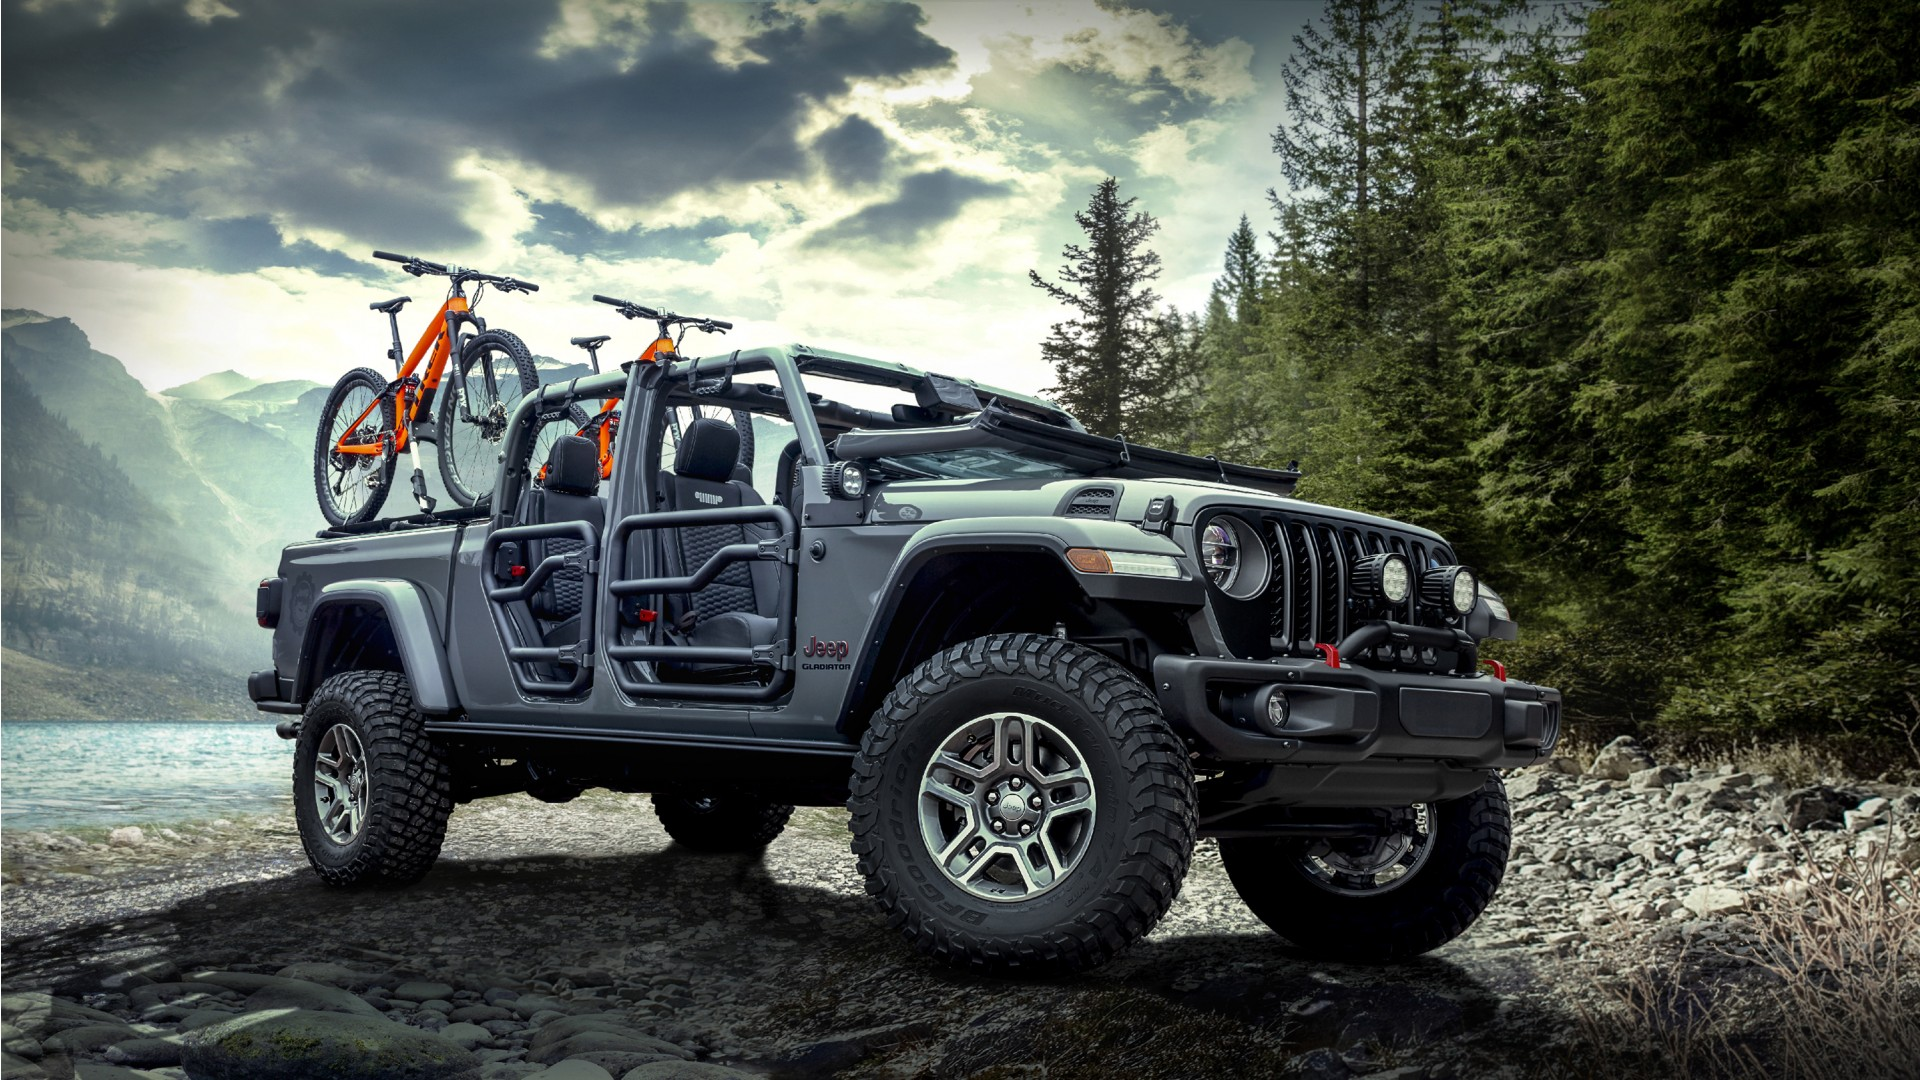 2020 Mopar Jeep Gladiator Rubicon Wallpaper | HD Car ...